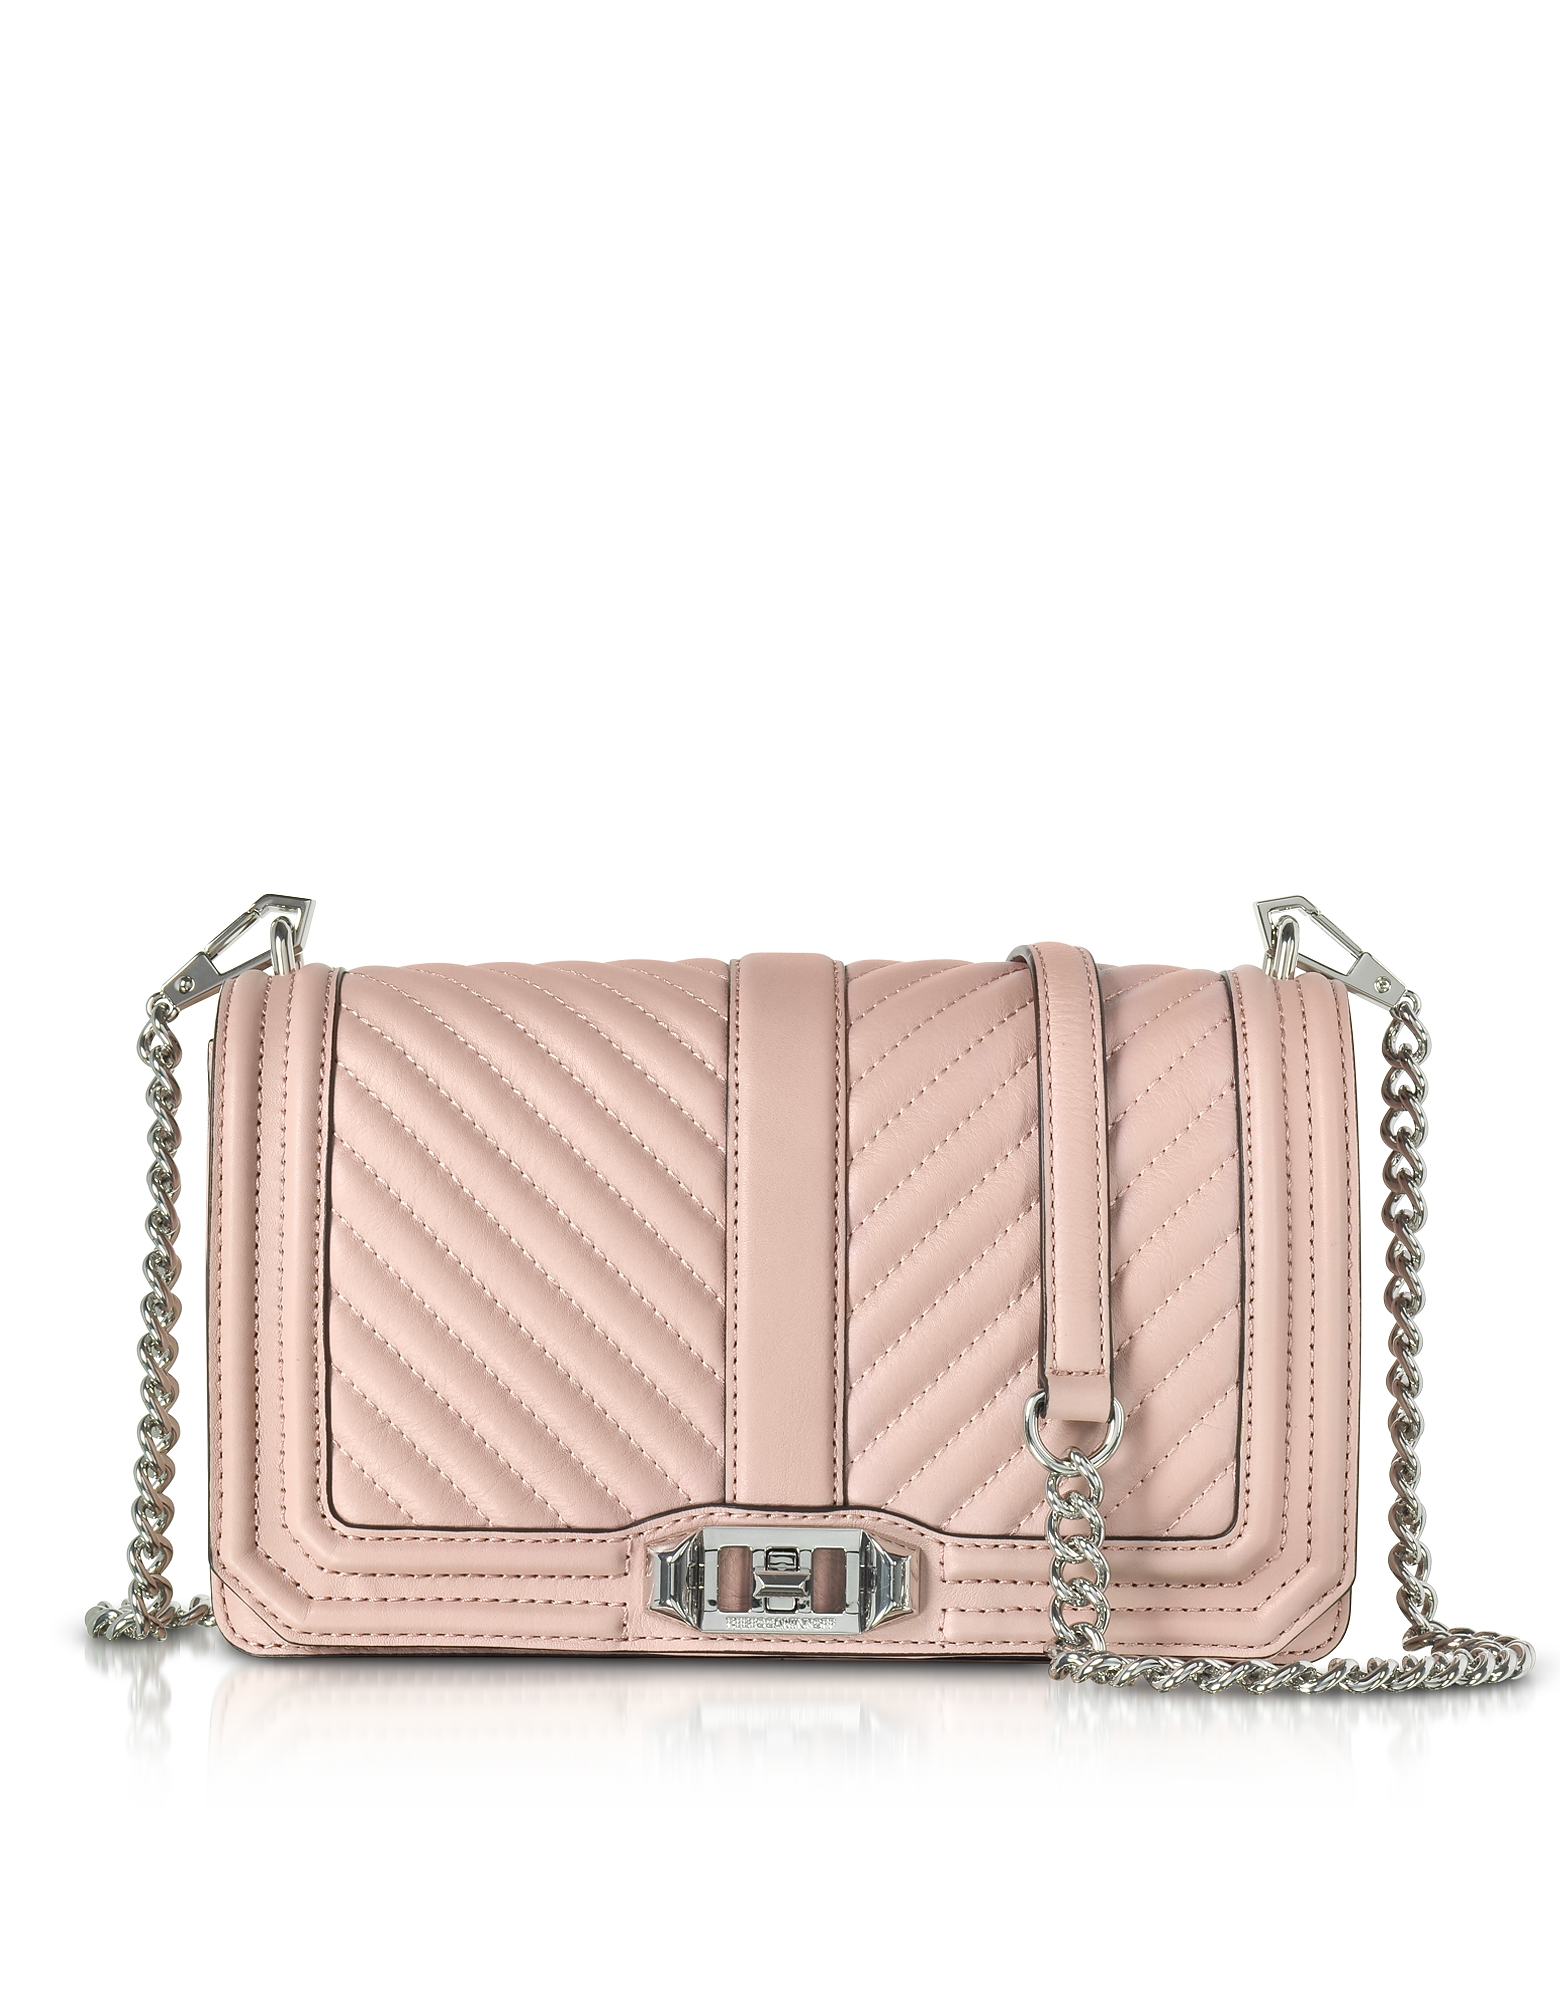 Rebecca Minkoff Vintage Pink Chevron Quilted Leather Love Crossbody Bag